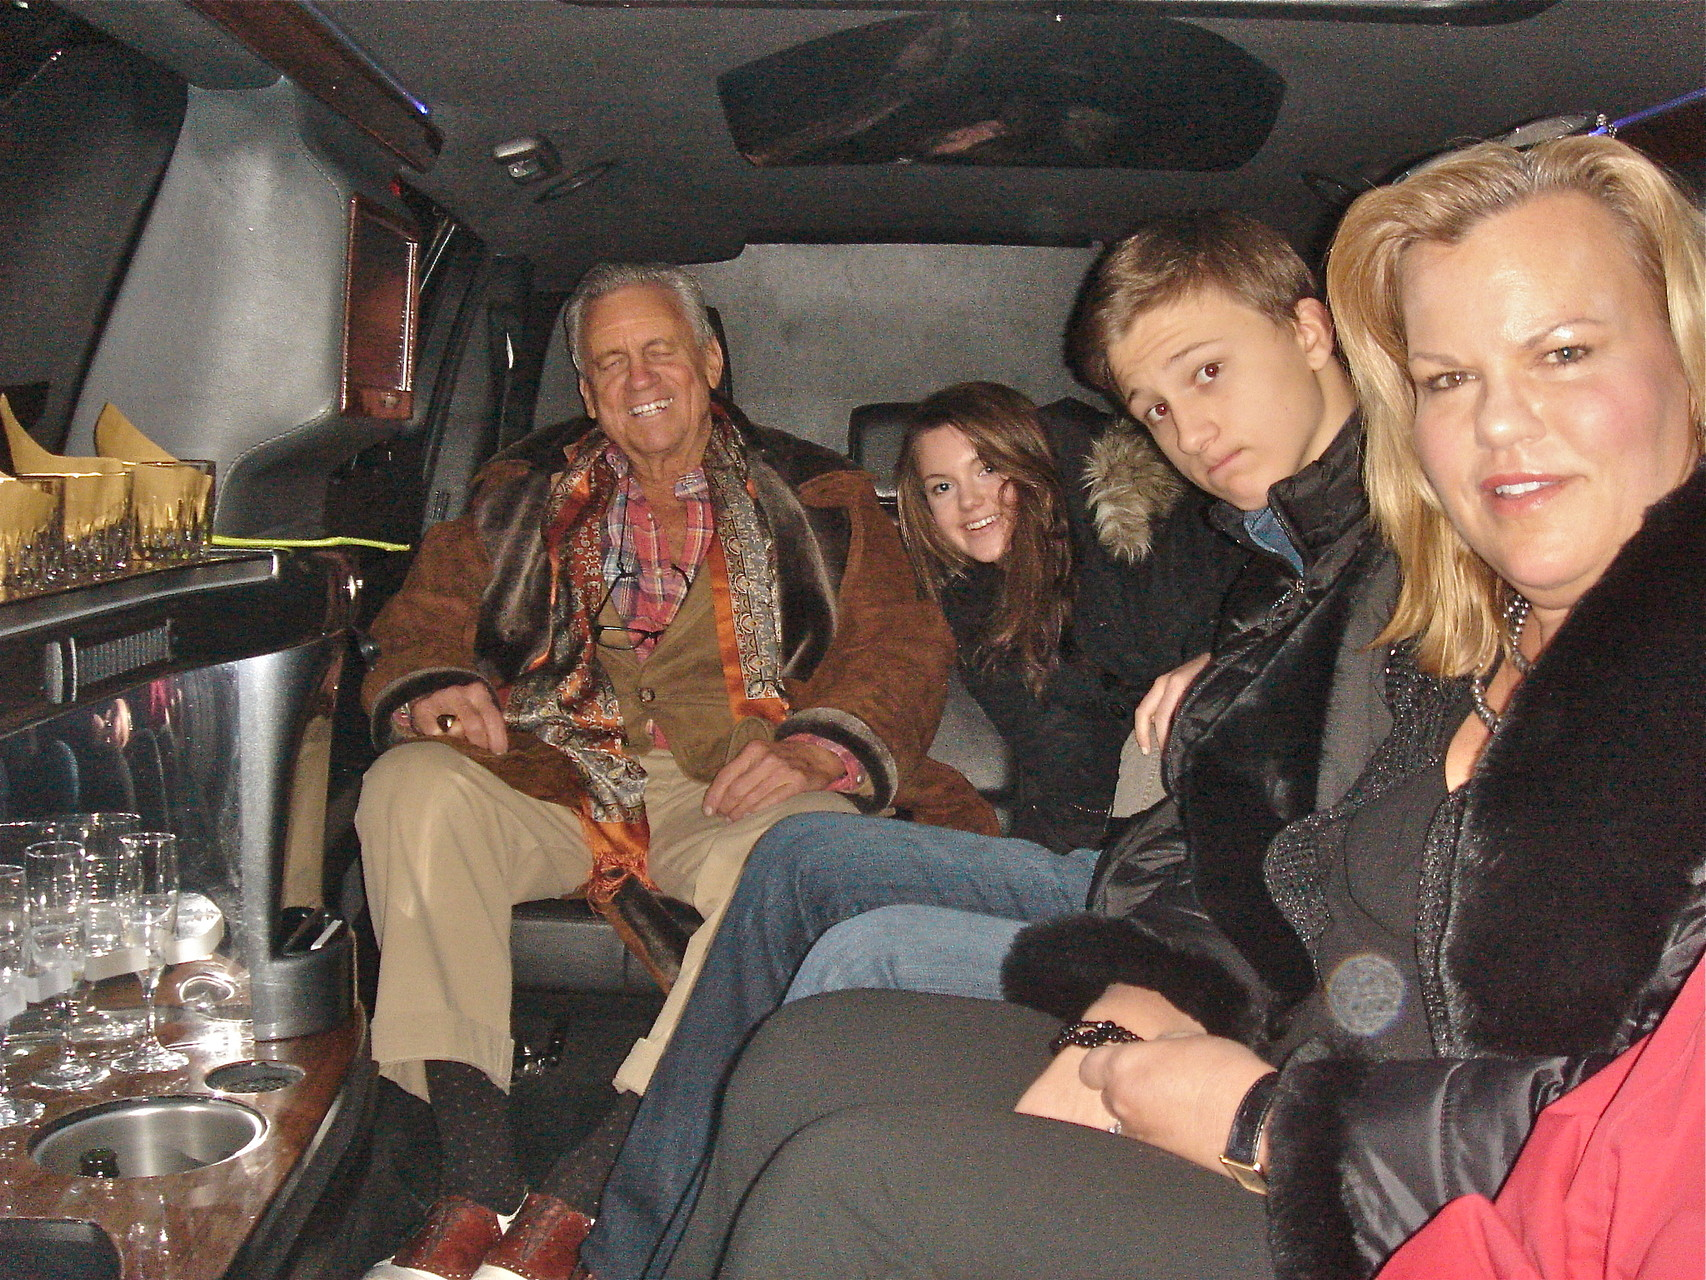 In the limo!-Stuart, Kate, Jack, & Celeste